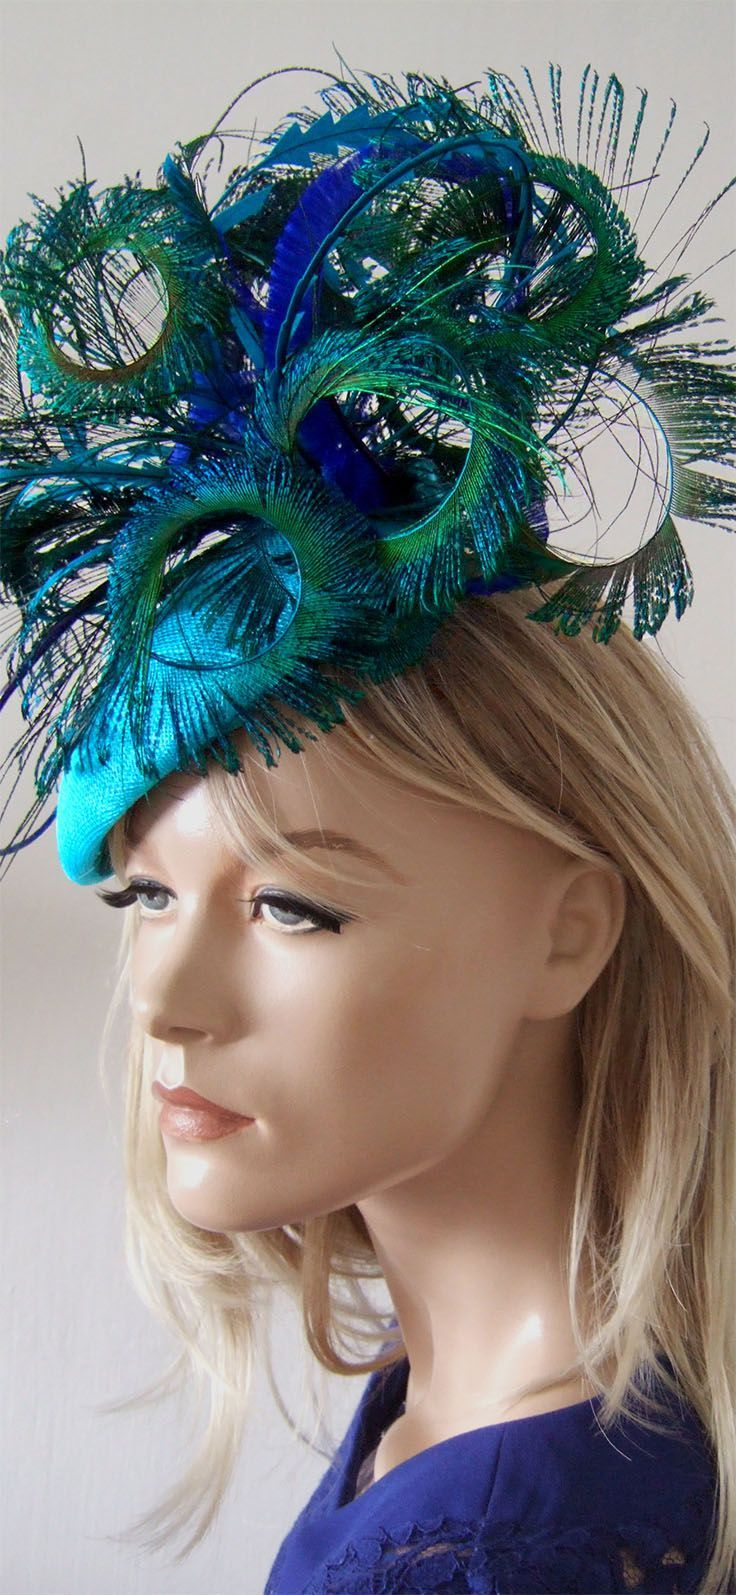 Brilliant Lagoon Turquoise, Royal Blue and Green Headpiece Peacock and Ostrich fascinator. Handmade in the UK. Can be customised to match your outfit colours. Perfect hat for the Races, Royal Ascot, Kentucky Derby, Melbourne Cup or any Races, Mother of the Bride or Friends wedding. #racingfashion #millinery #fashion #fashionista #peacocks #feathers #outfits #outfitinspiration #dress2impress #HatsForWomenRaces